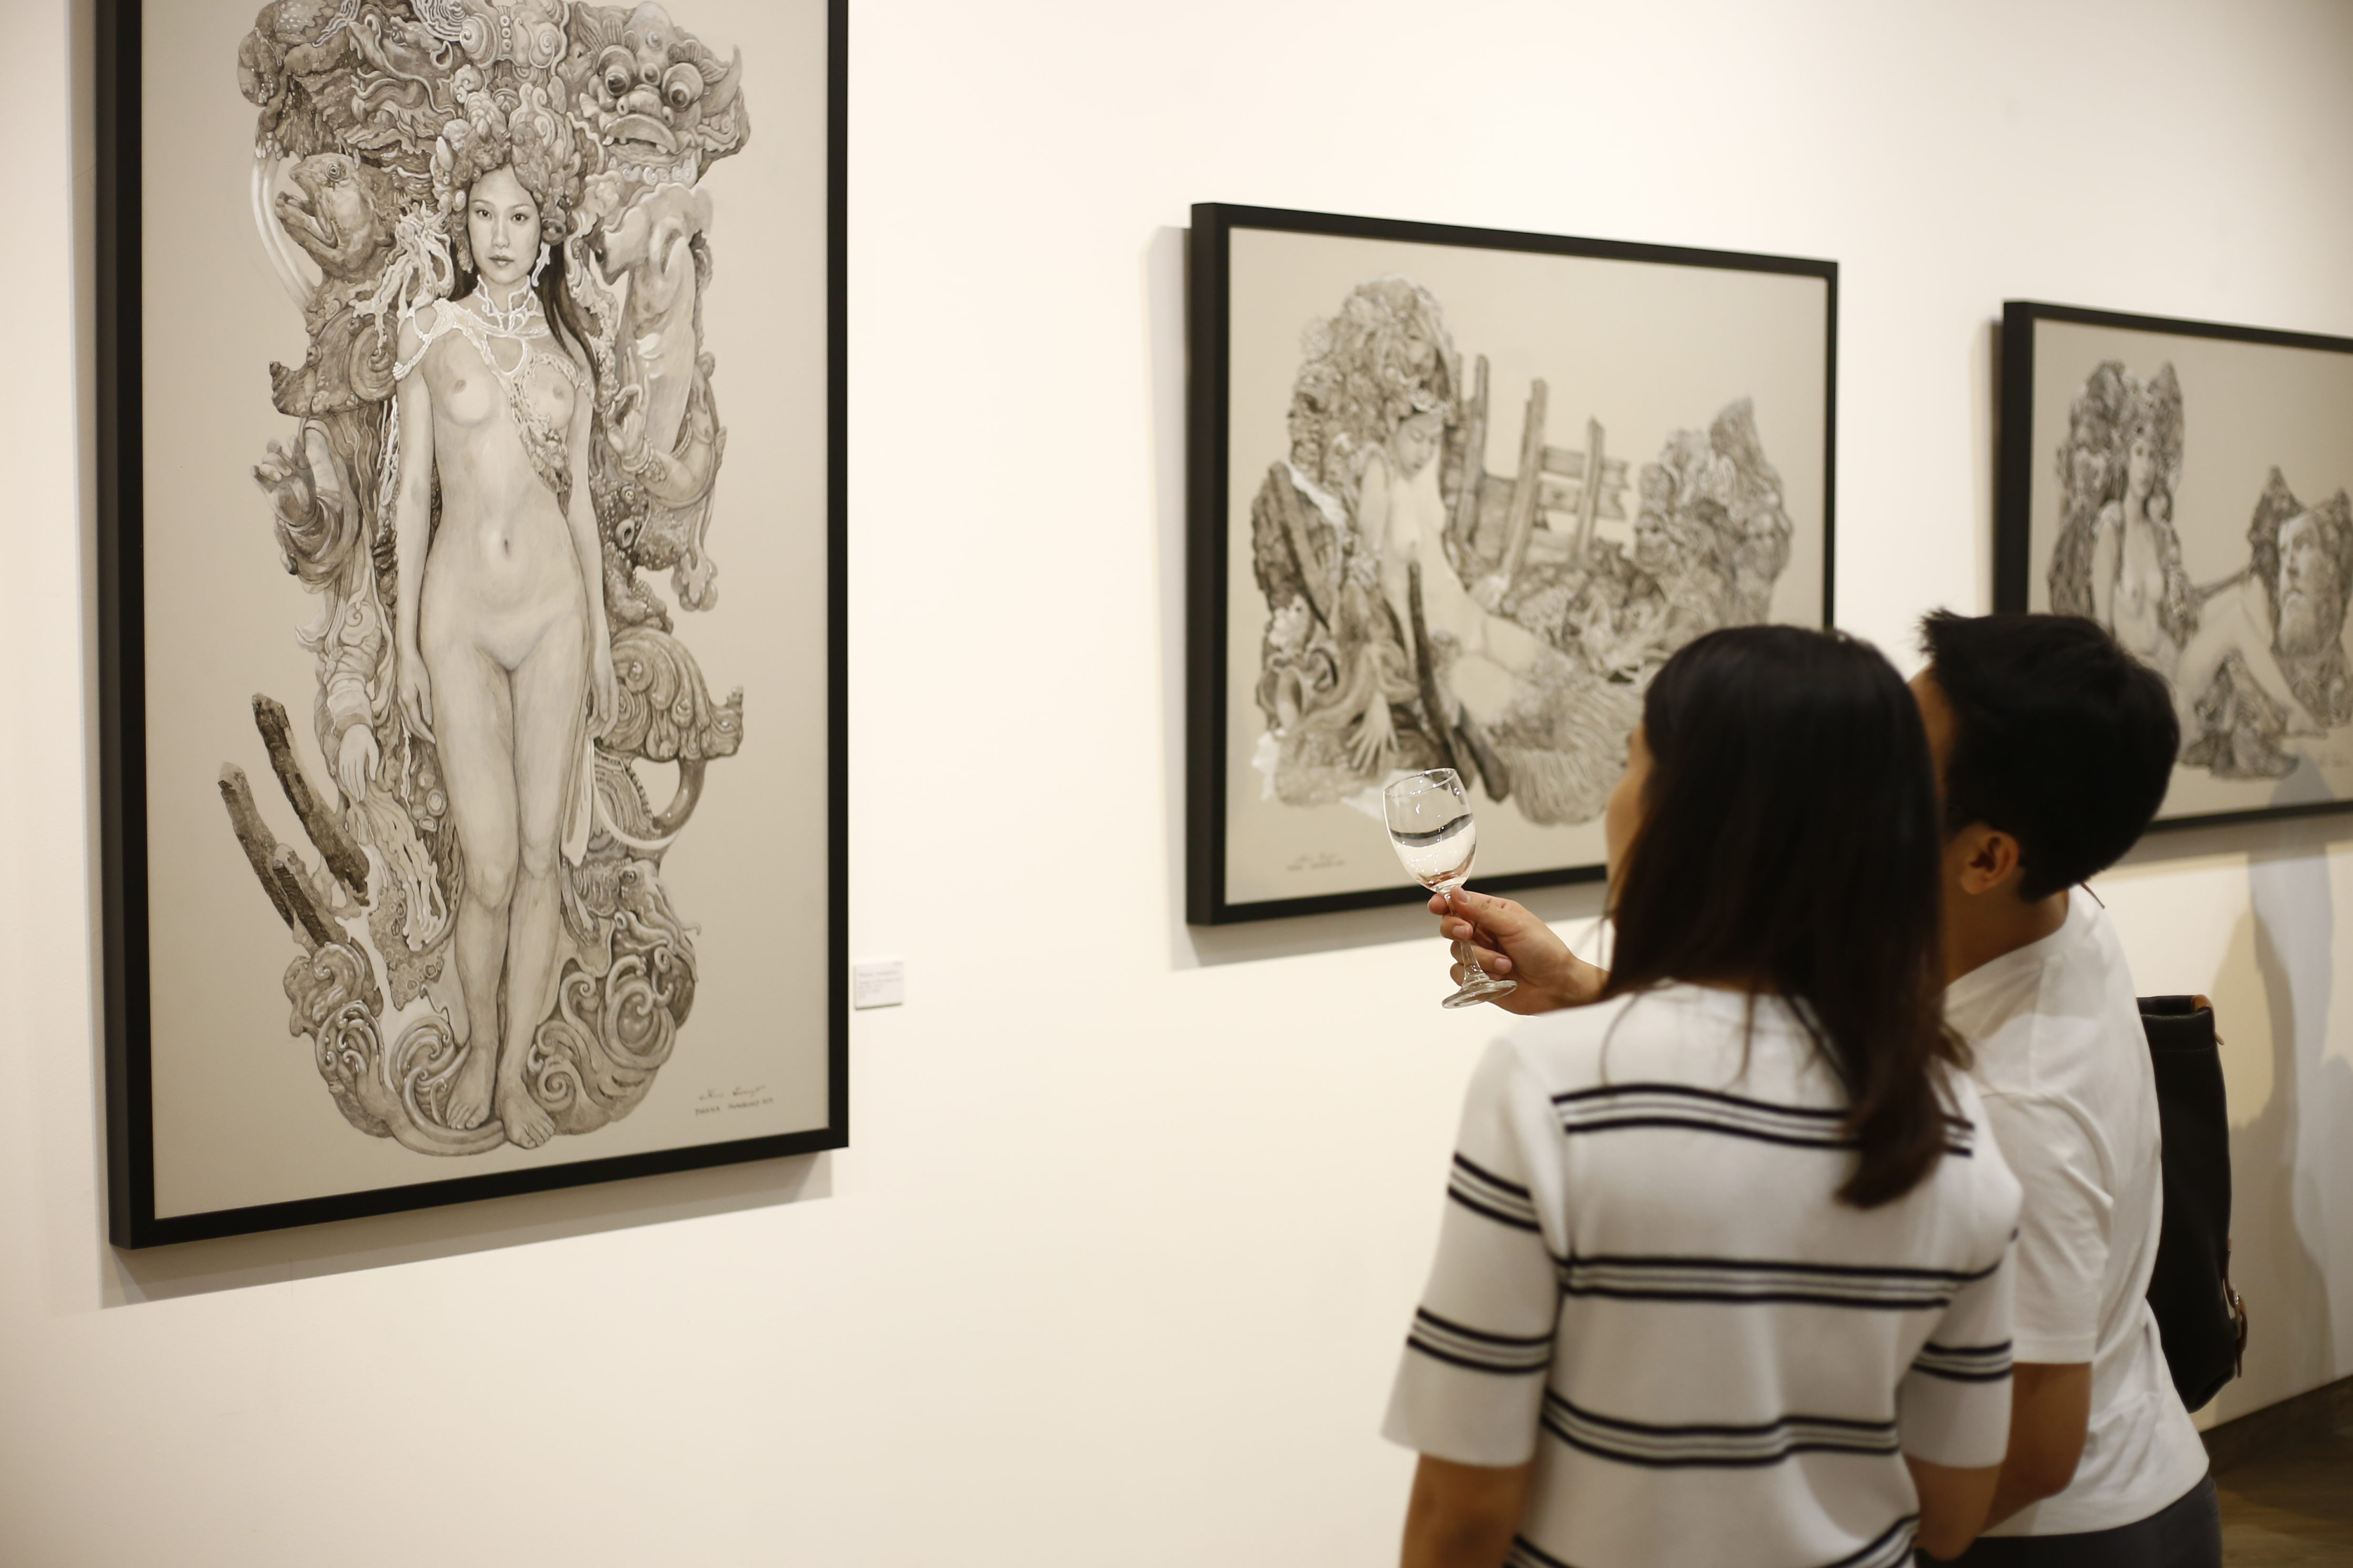 Thanwa's works with Audience